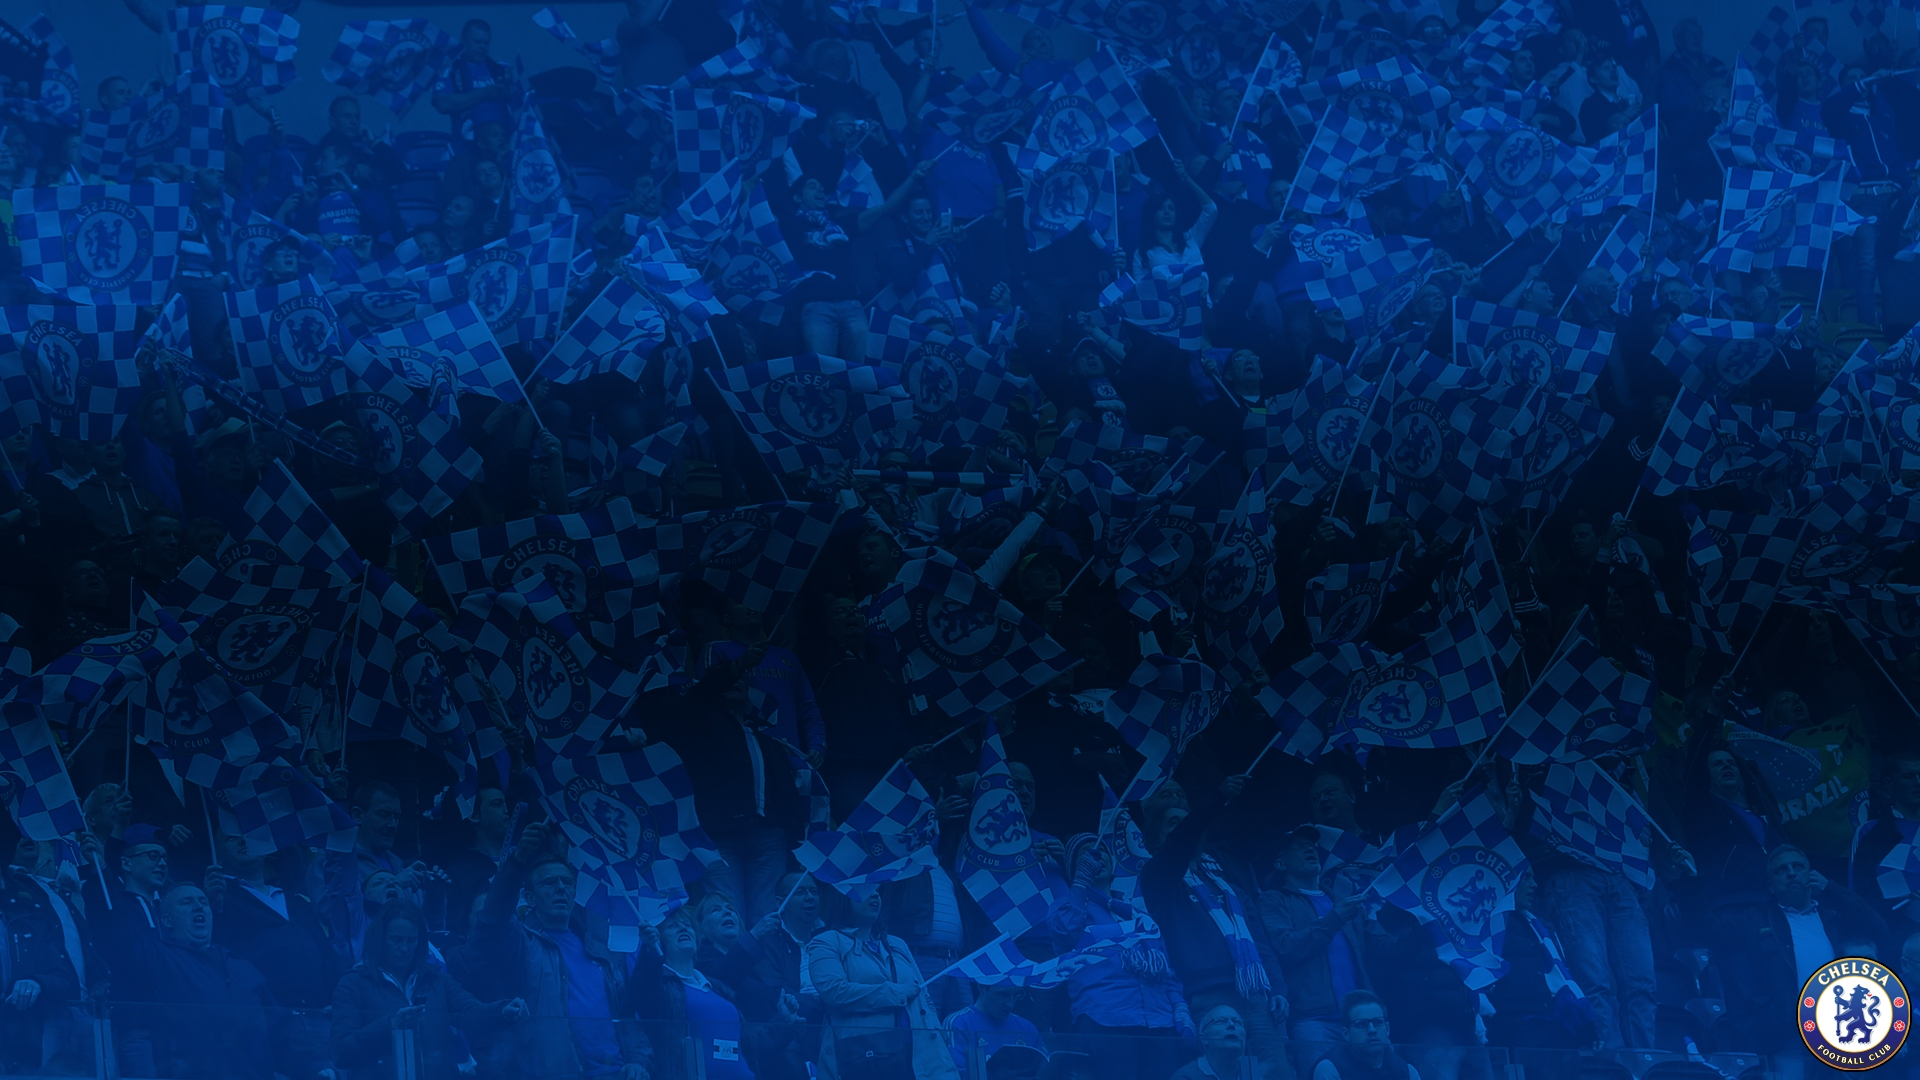 Chelsea for 1080p 1920px x 1080p resolution 1920x1080